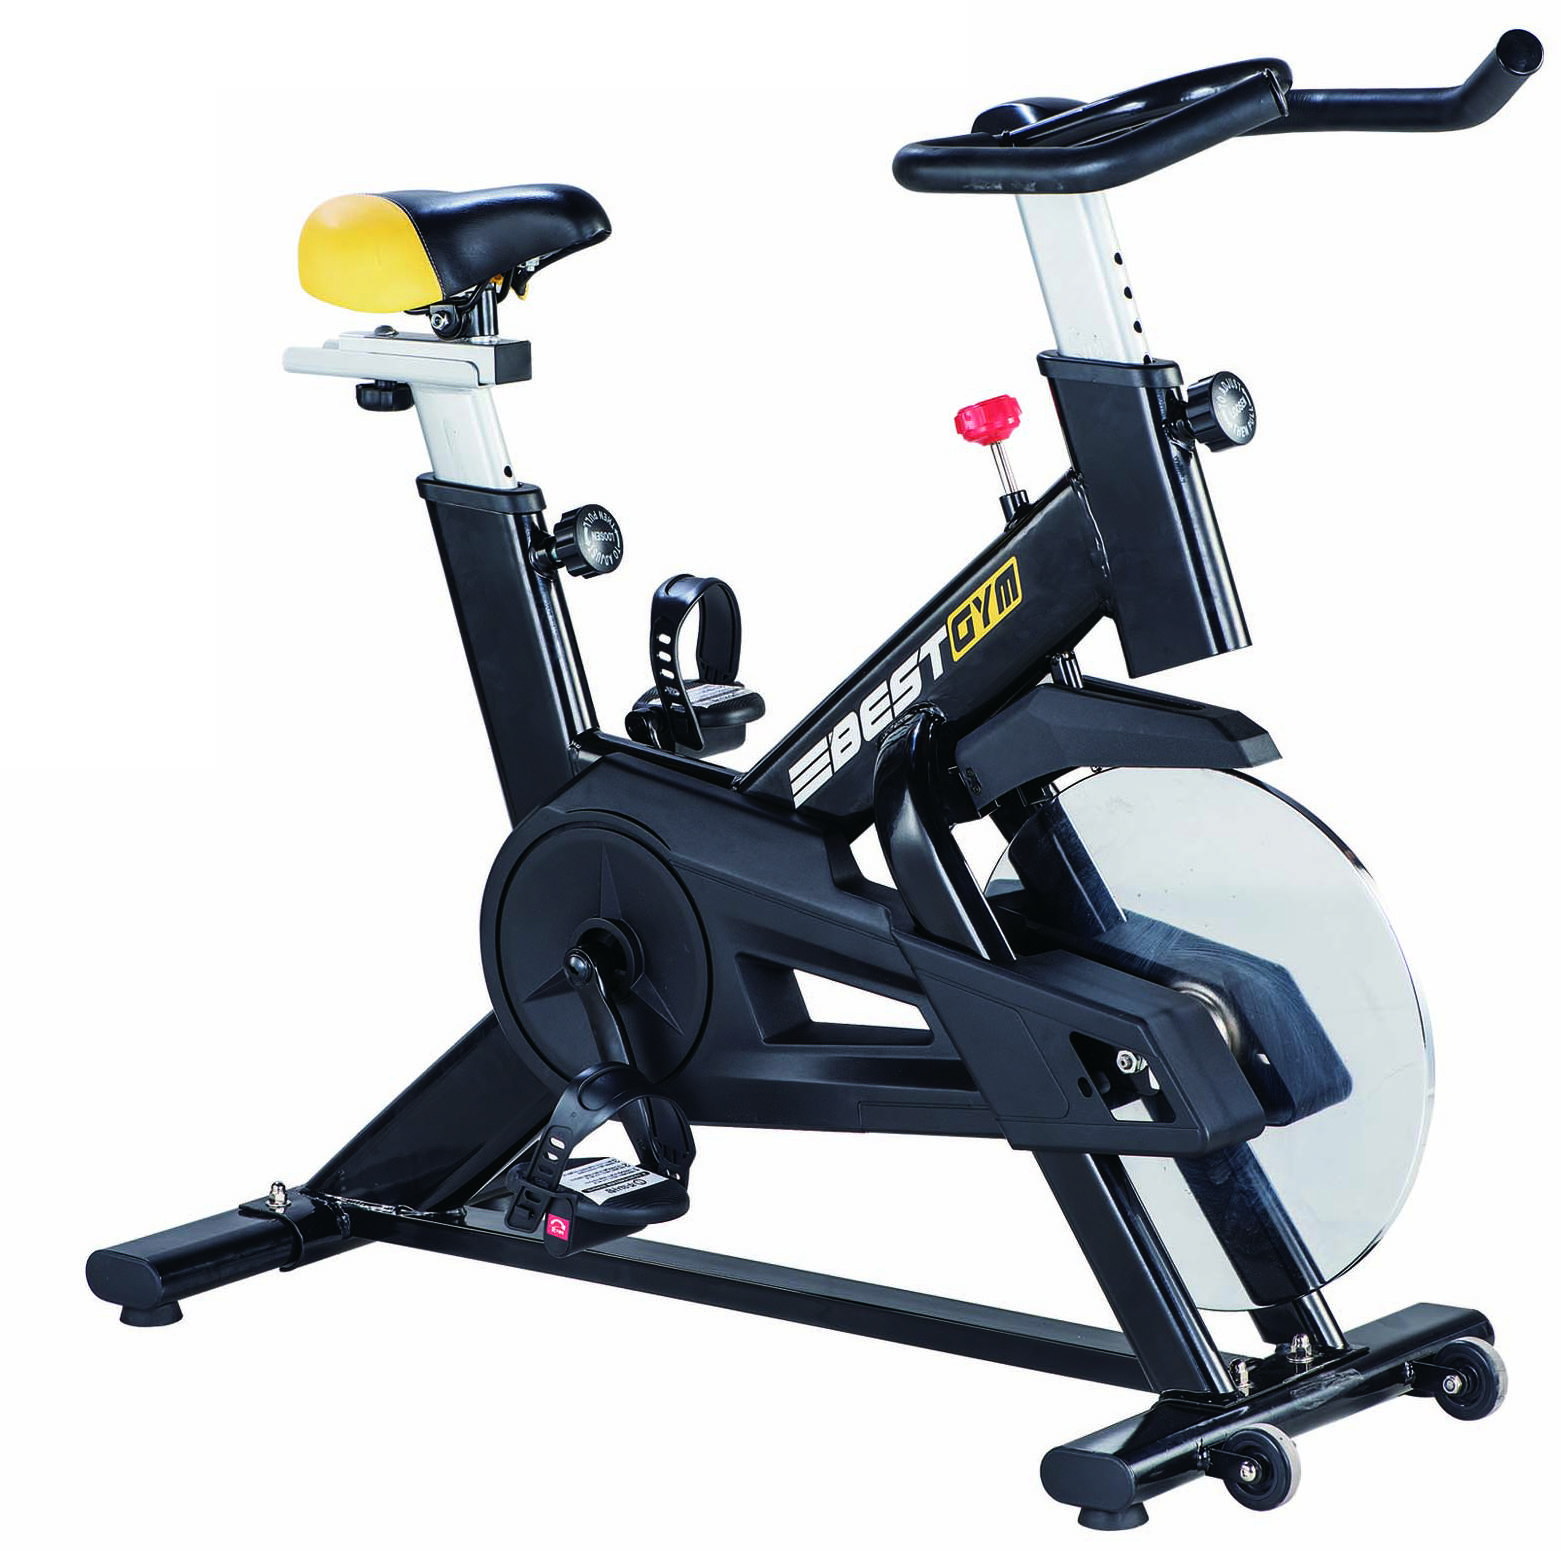 Gym Equipment Indoor Home Use Spinning Exercise Bike